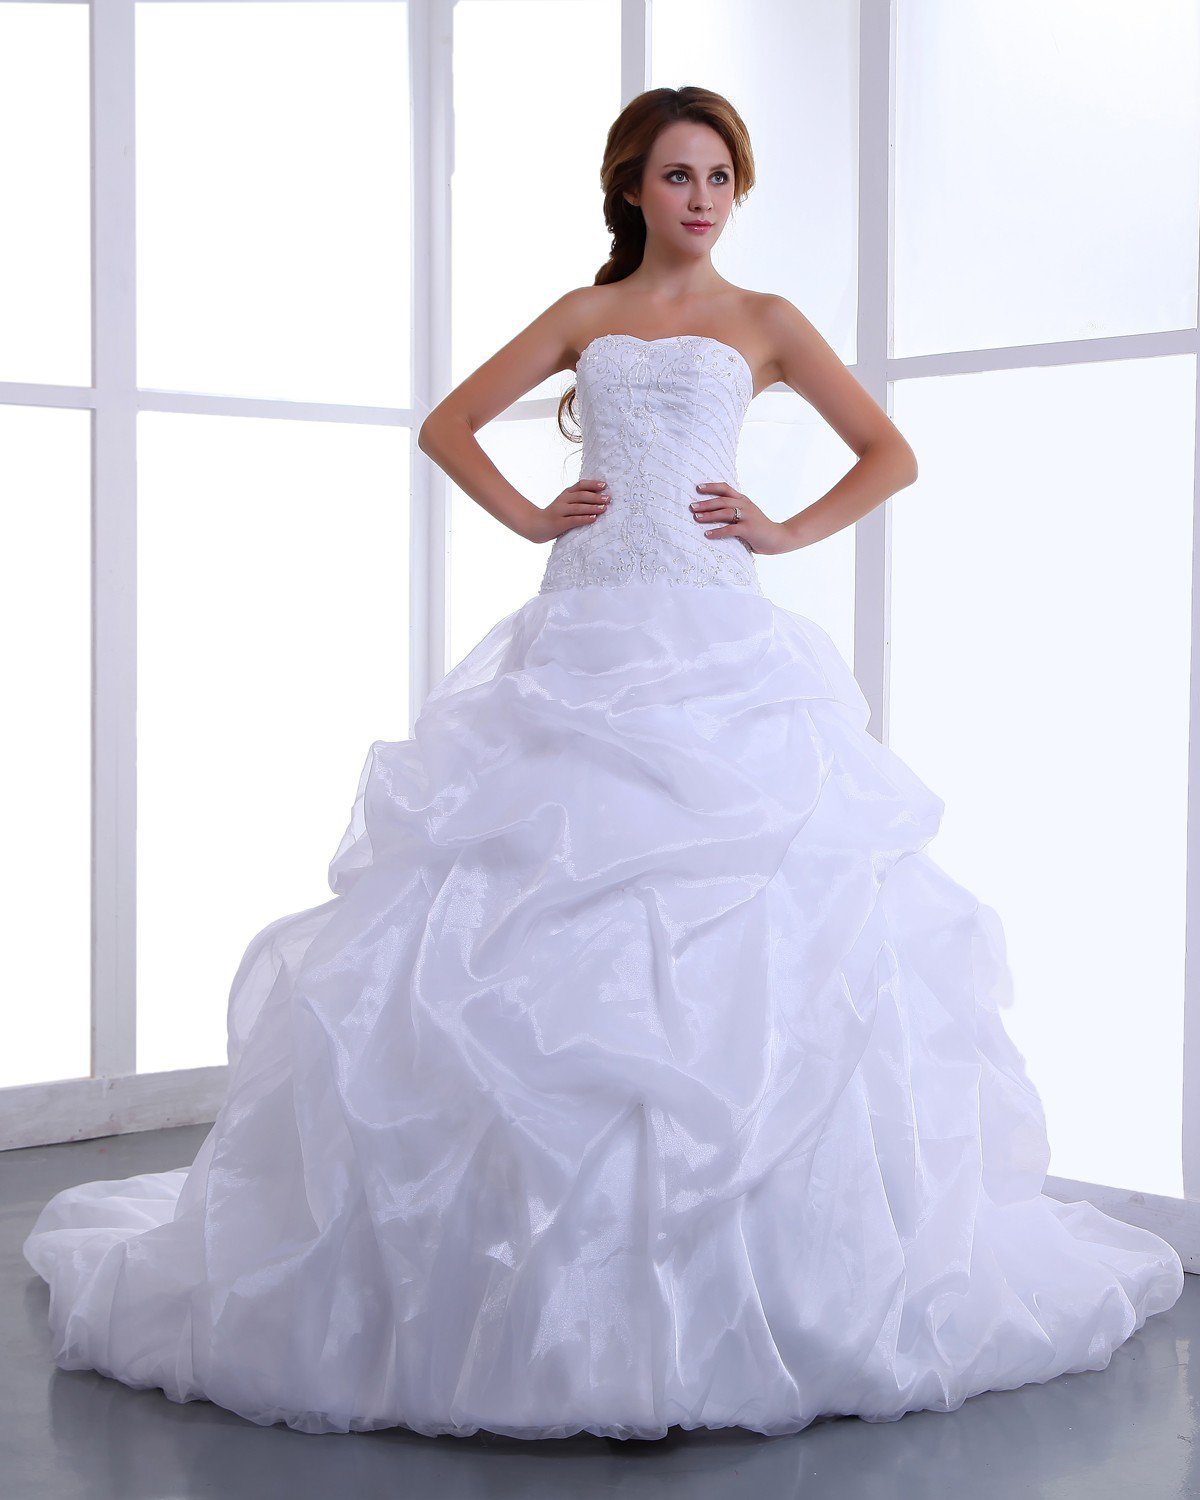 Charming Strapless Satin Taffeta Ruffle Beading Cathedral A-Line Bridal Gown Wedding Dress